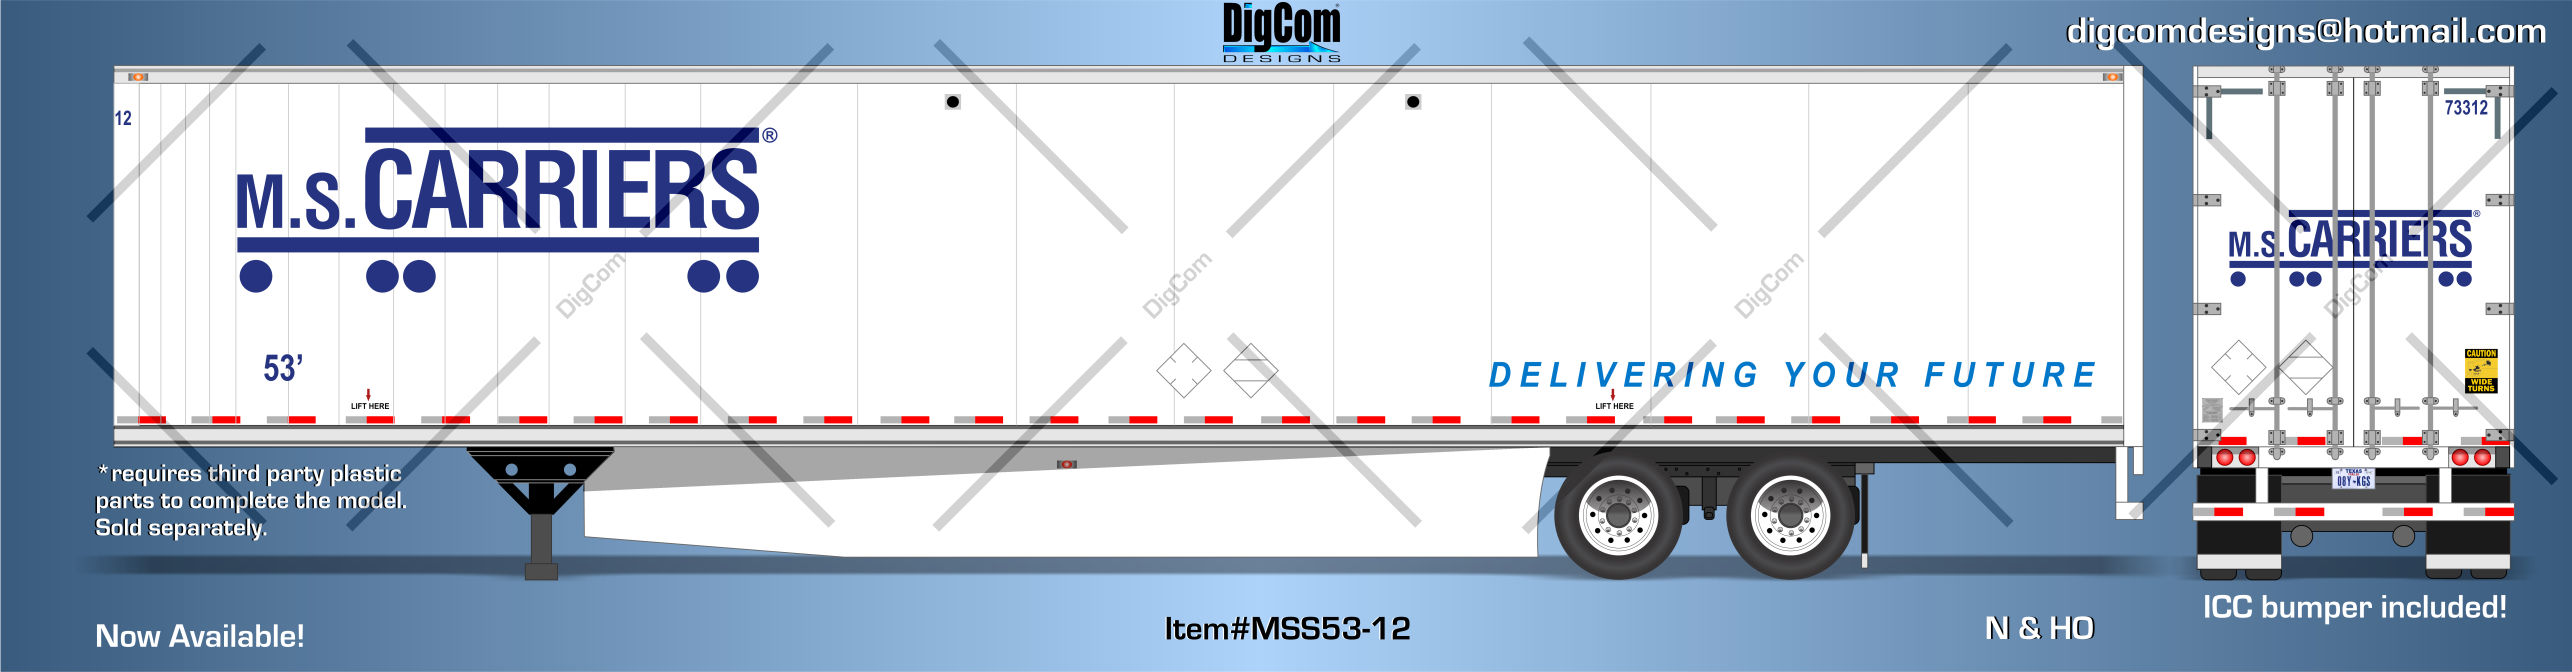 MS CARRIERS TRAILER DESIGN.jpg